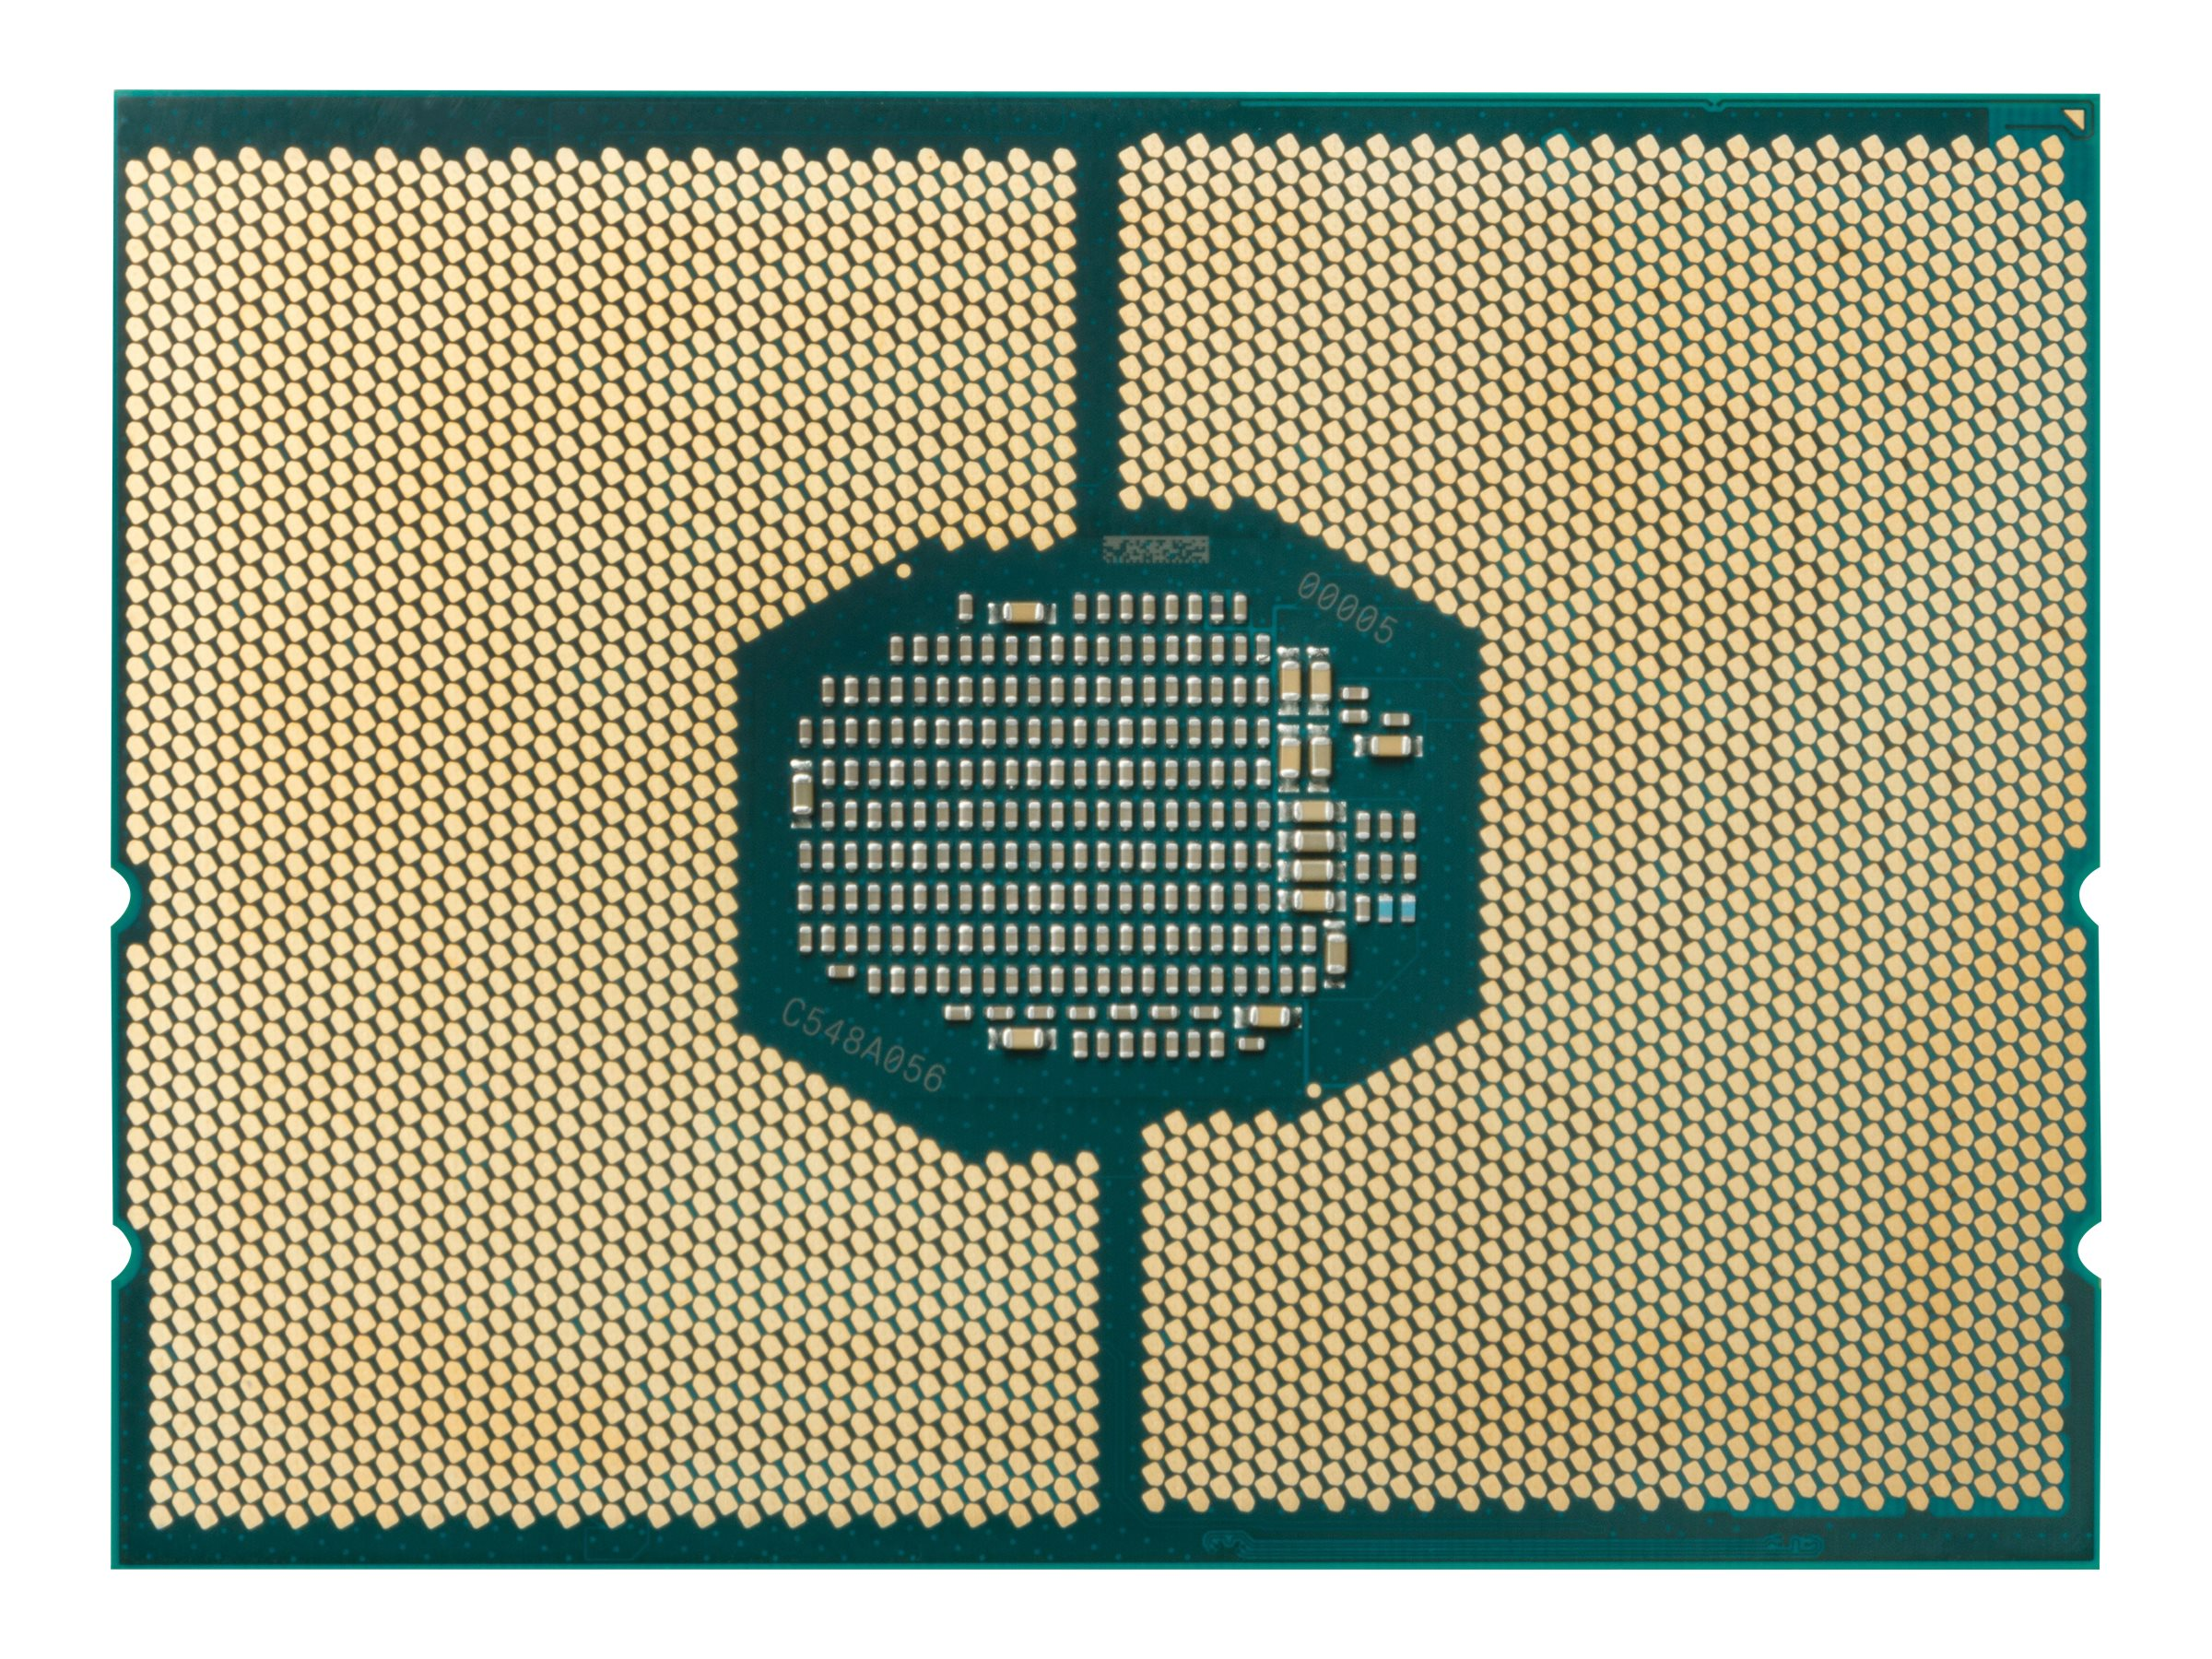 Intel Xeon Gold 6140M / 2.3 GHz processor